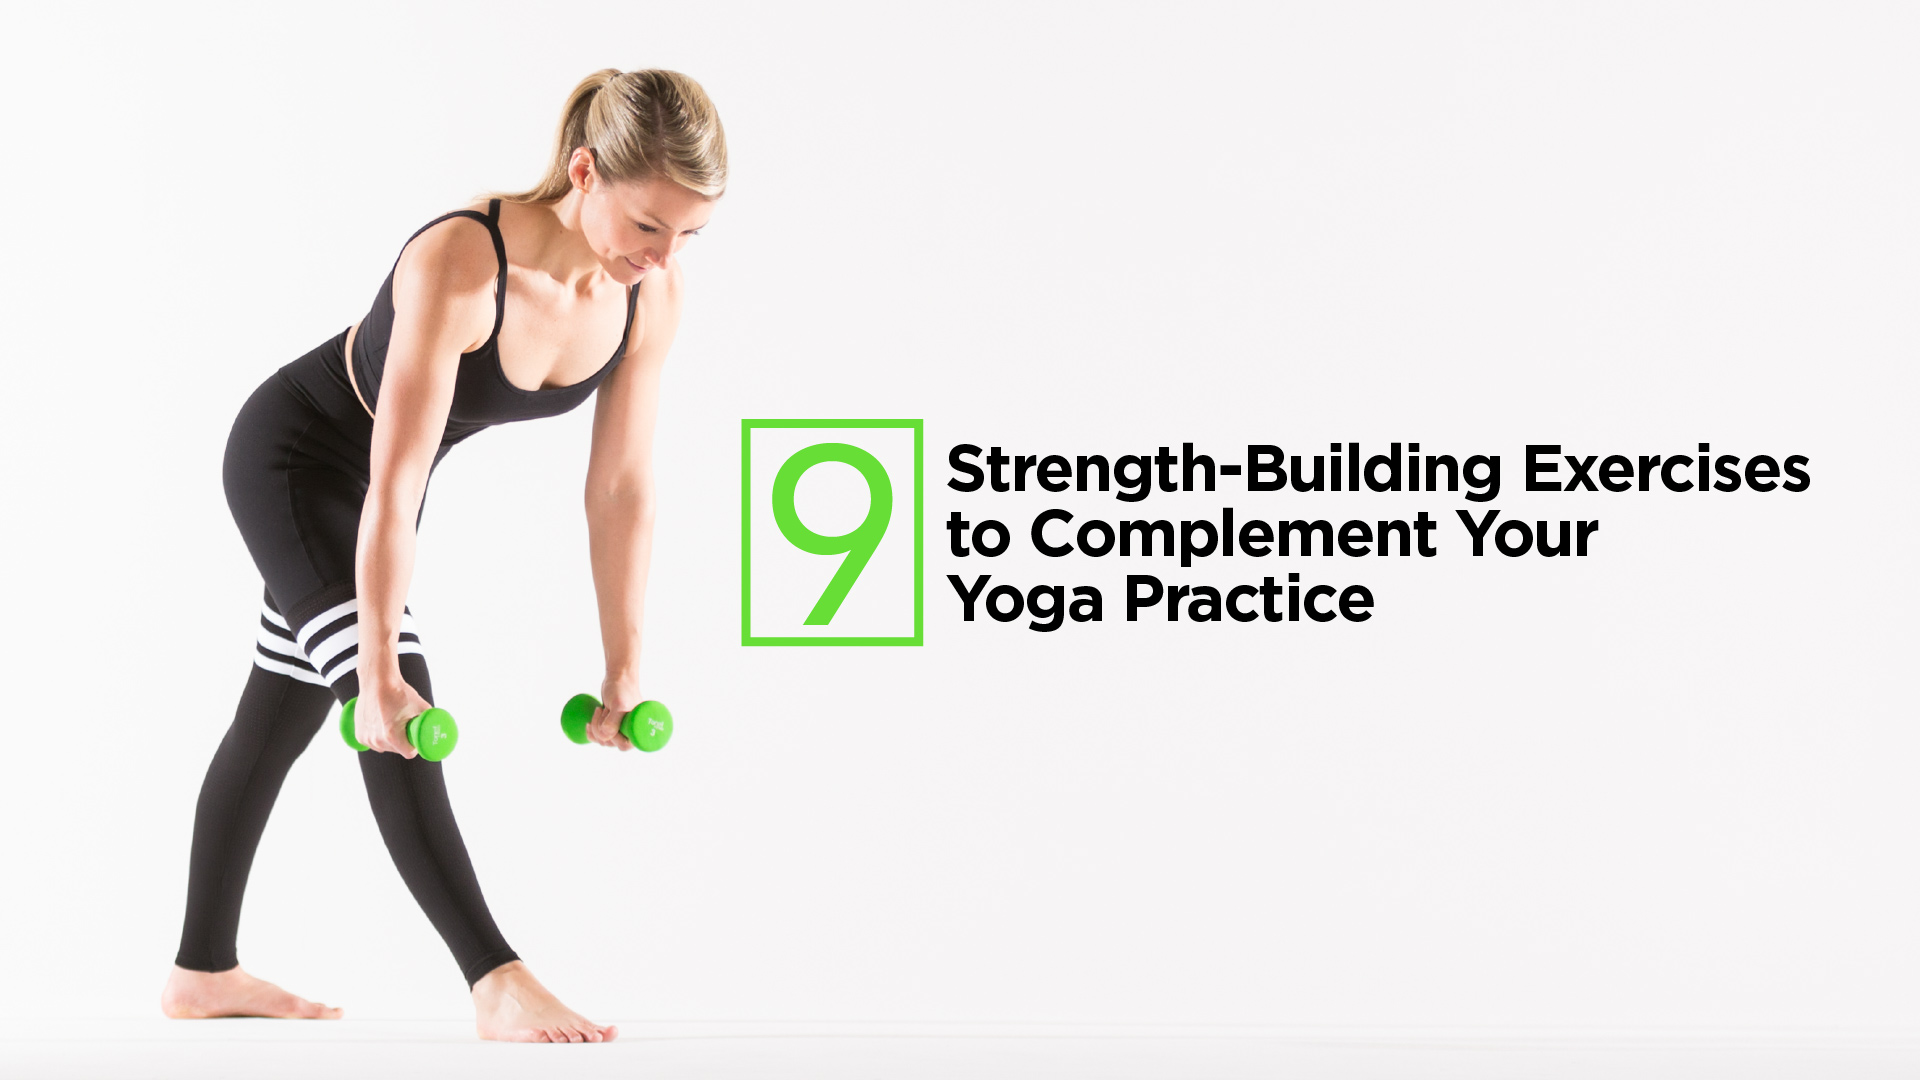 9 Strength-Building Exercises to Complement Your Yoga Practice